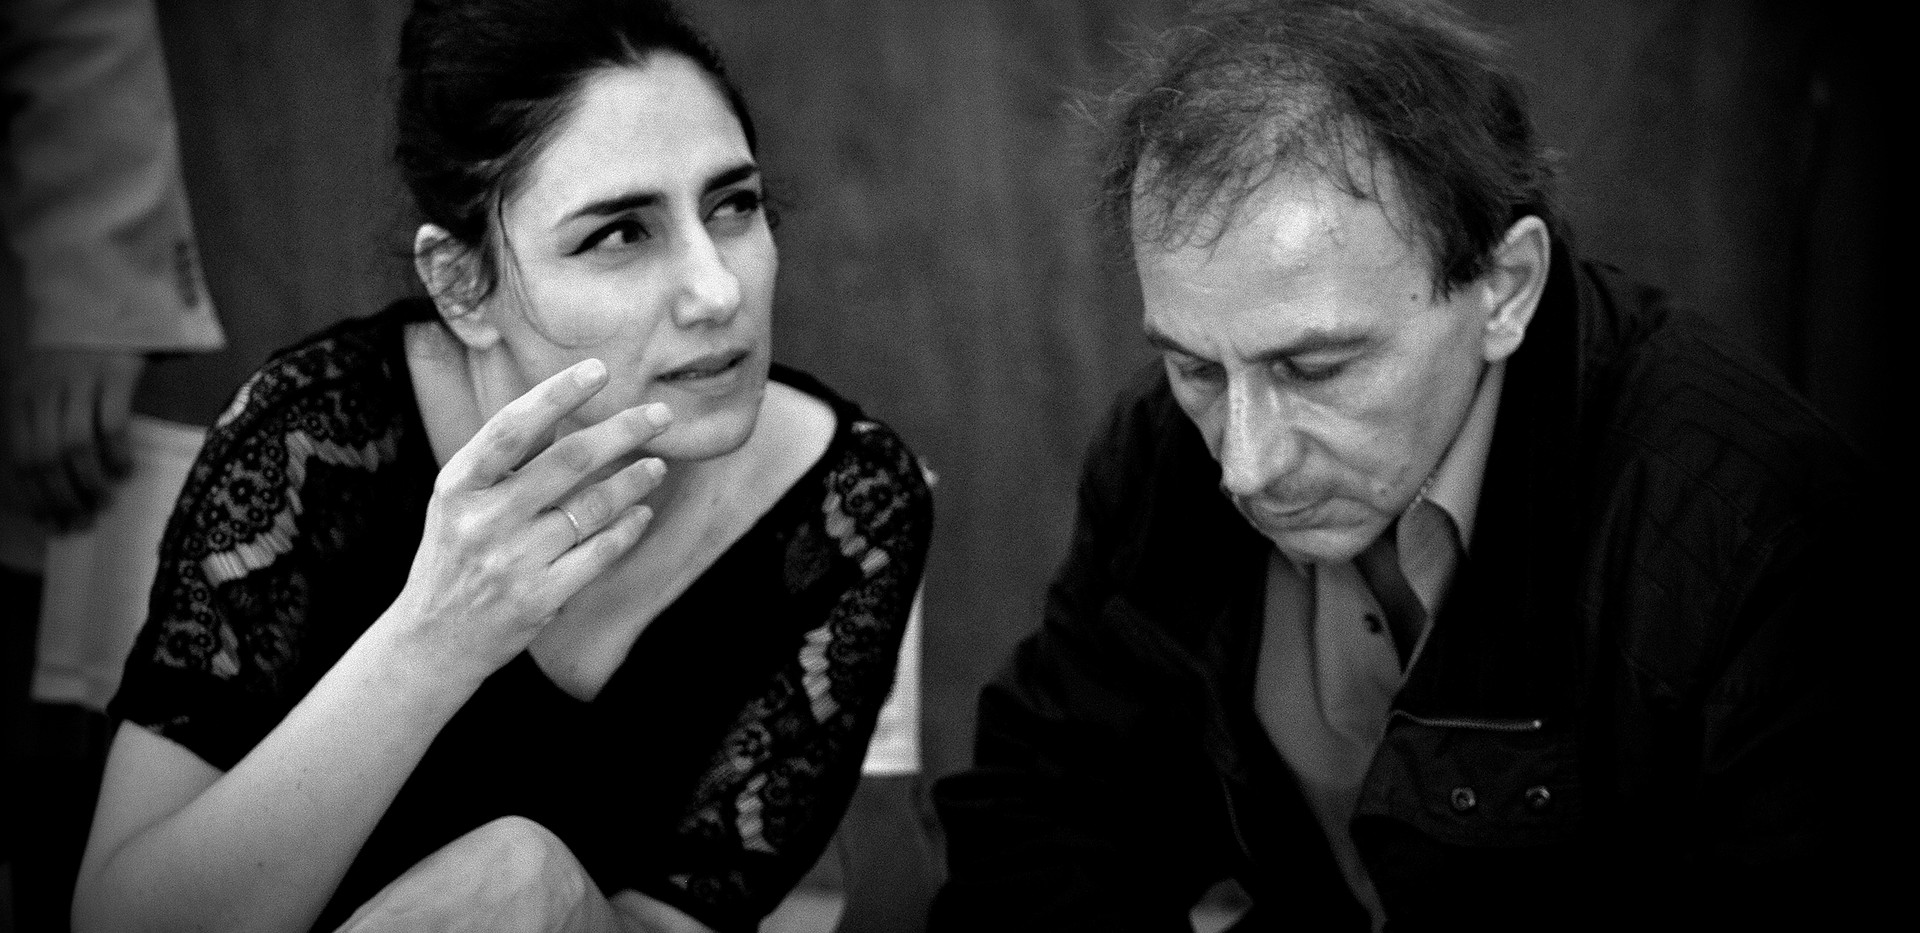 Ronit Elkabetz rip and michelle Houlbeqe